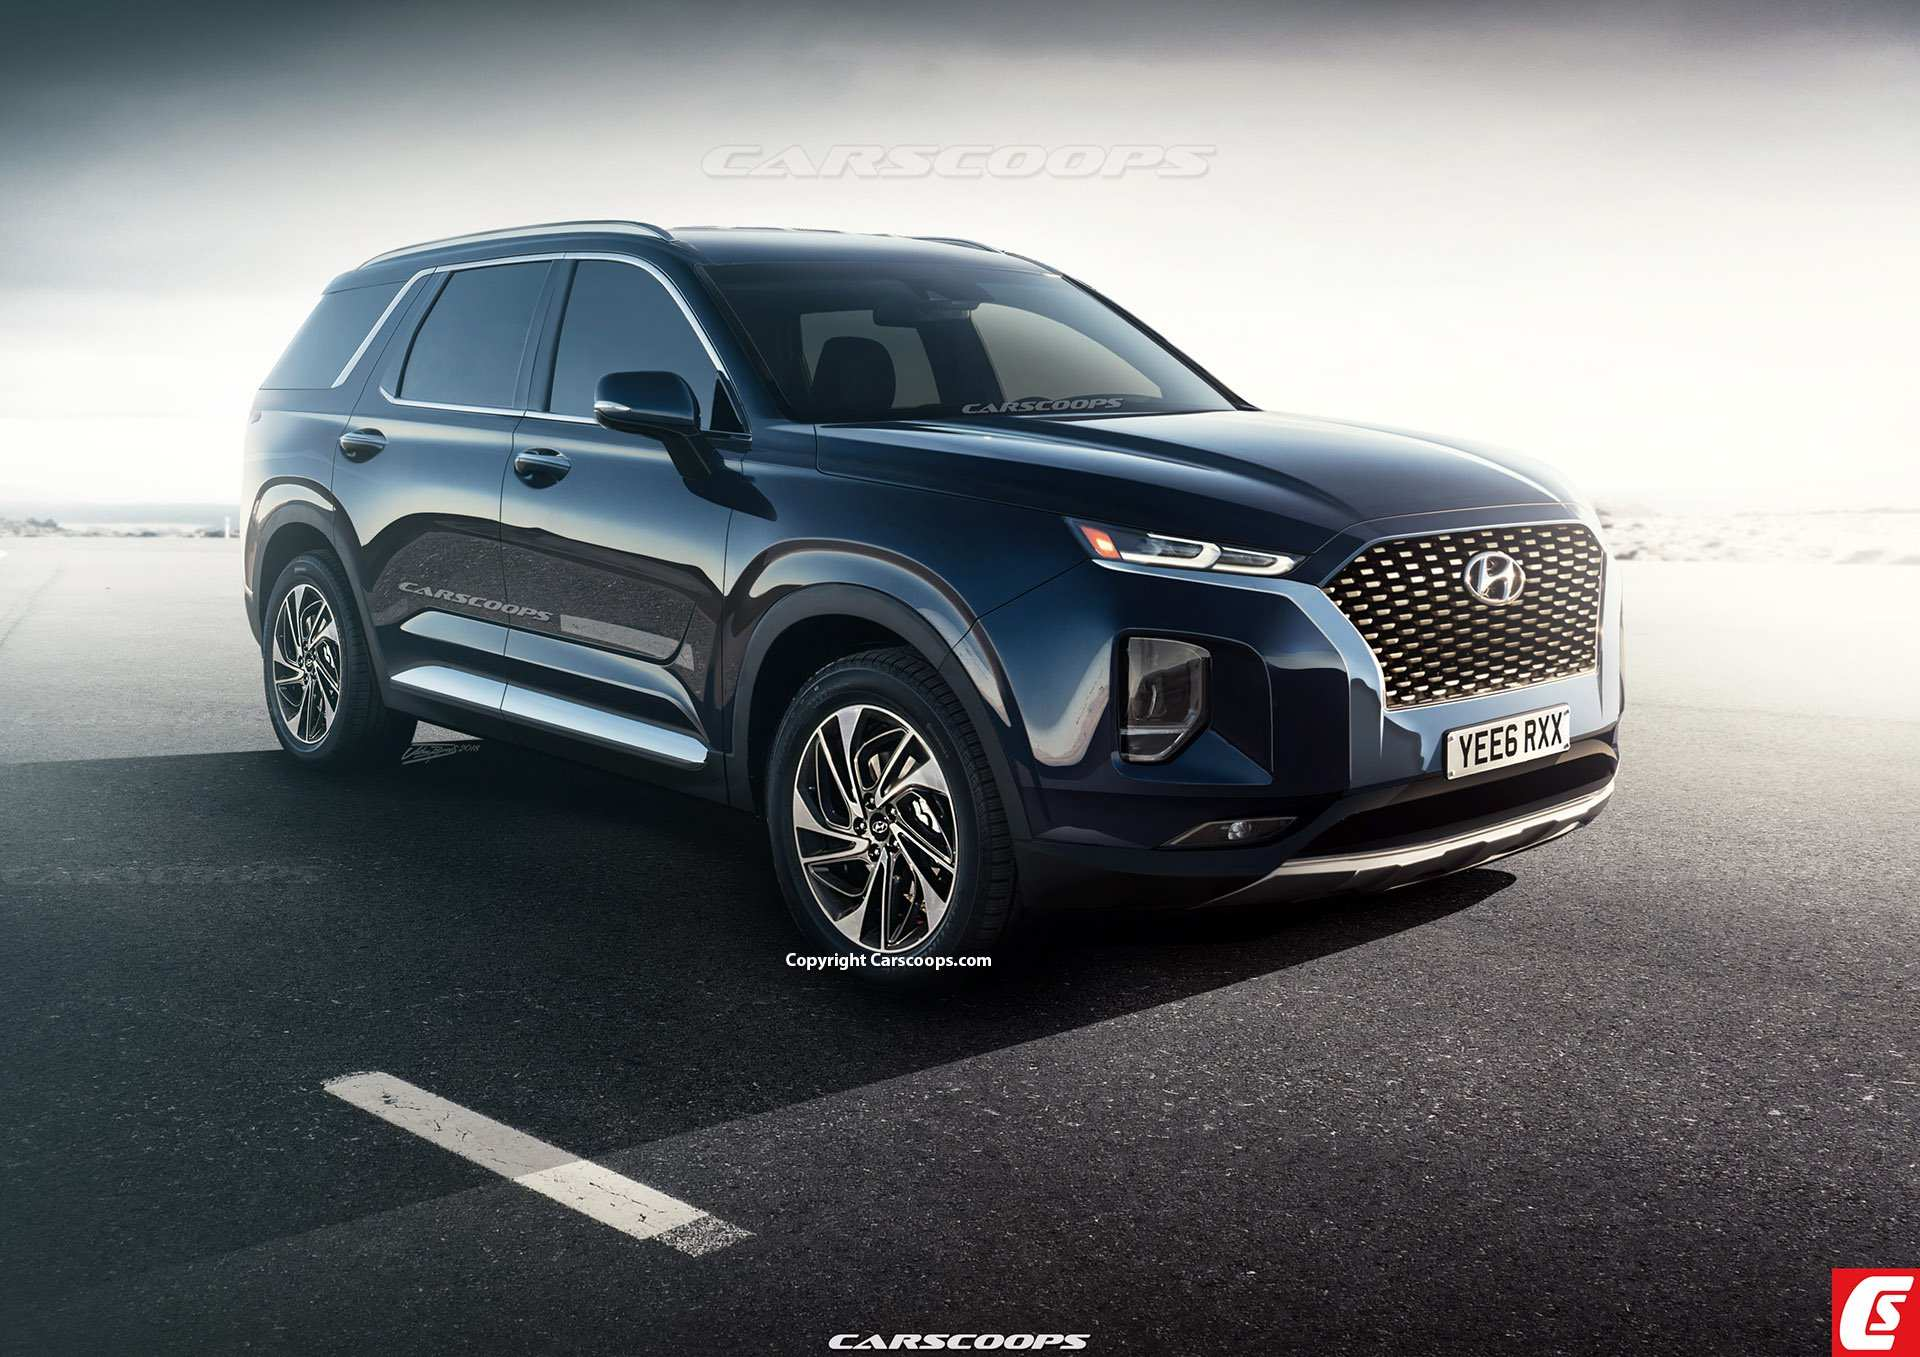 64 The Hyundai Large Suv 2020 Exterior and Interior for Hyundai Large Suv 2020